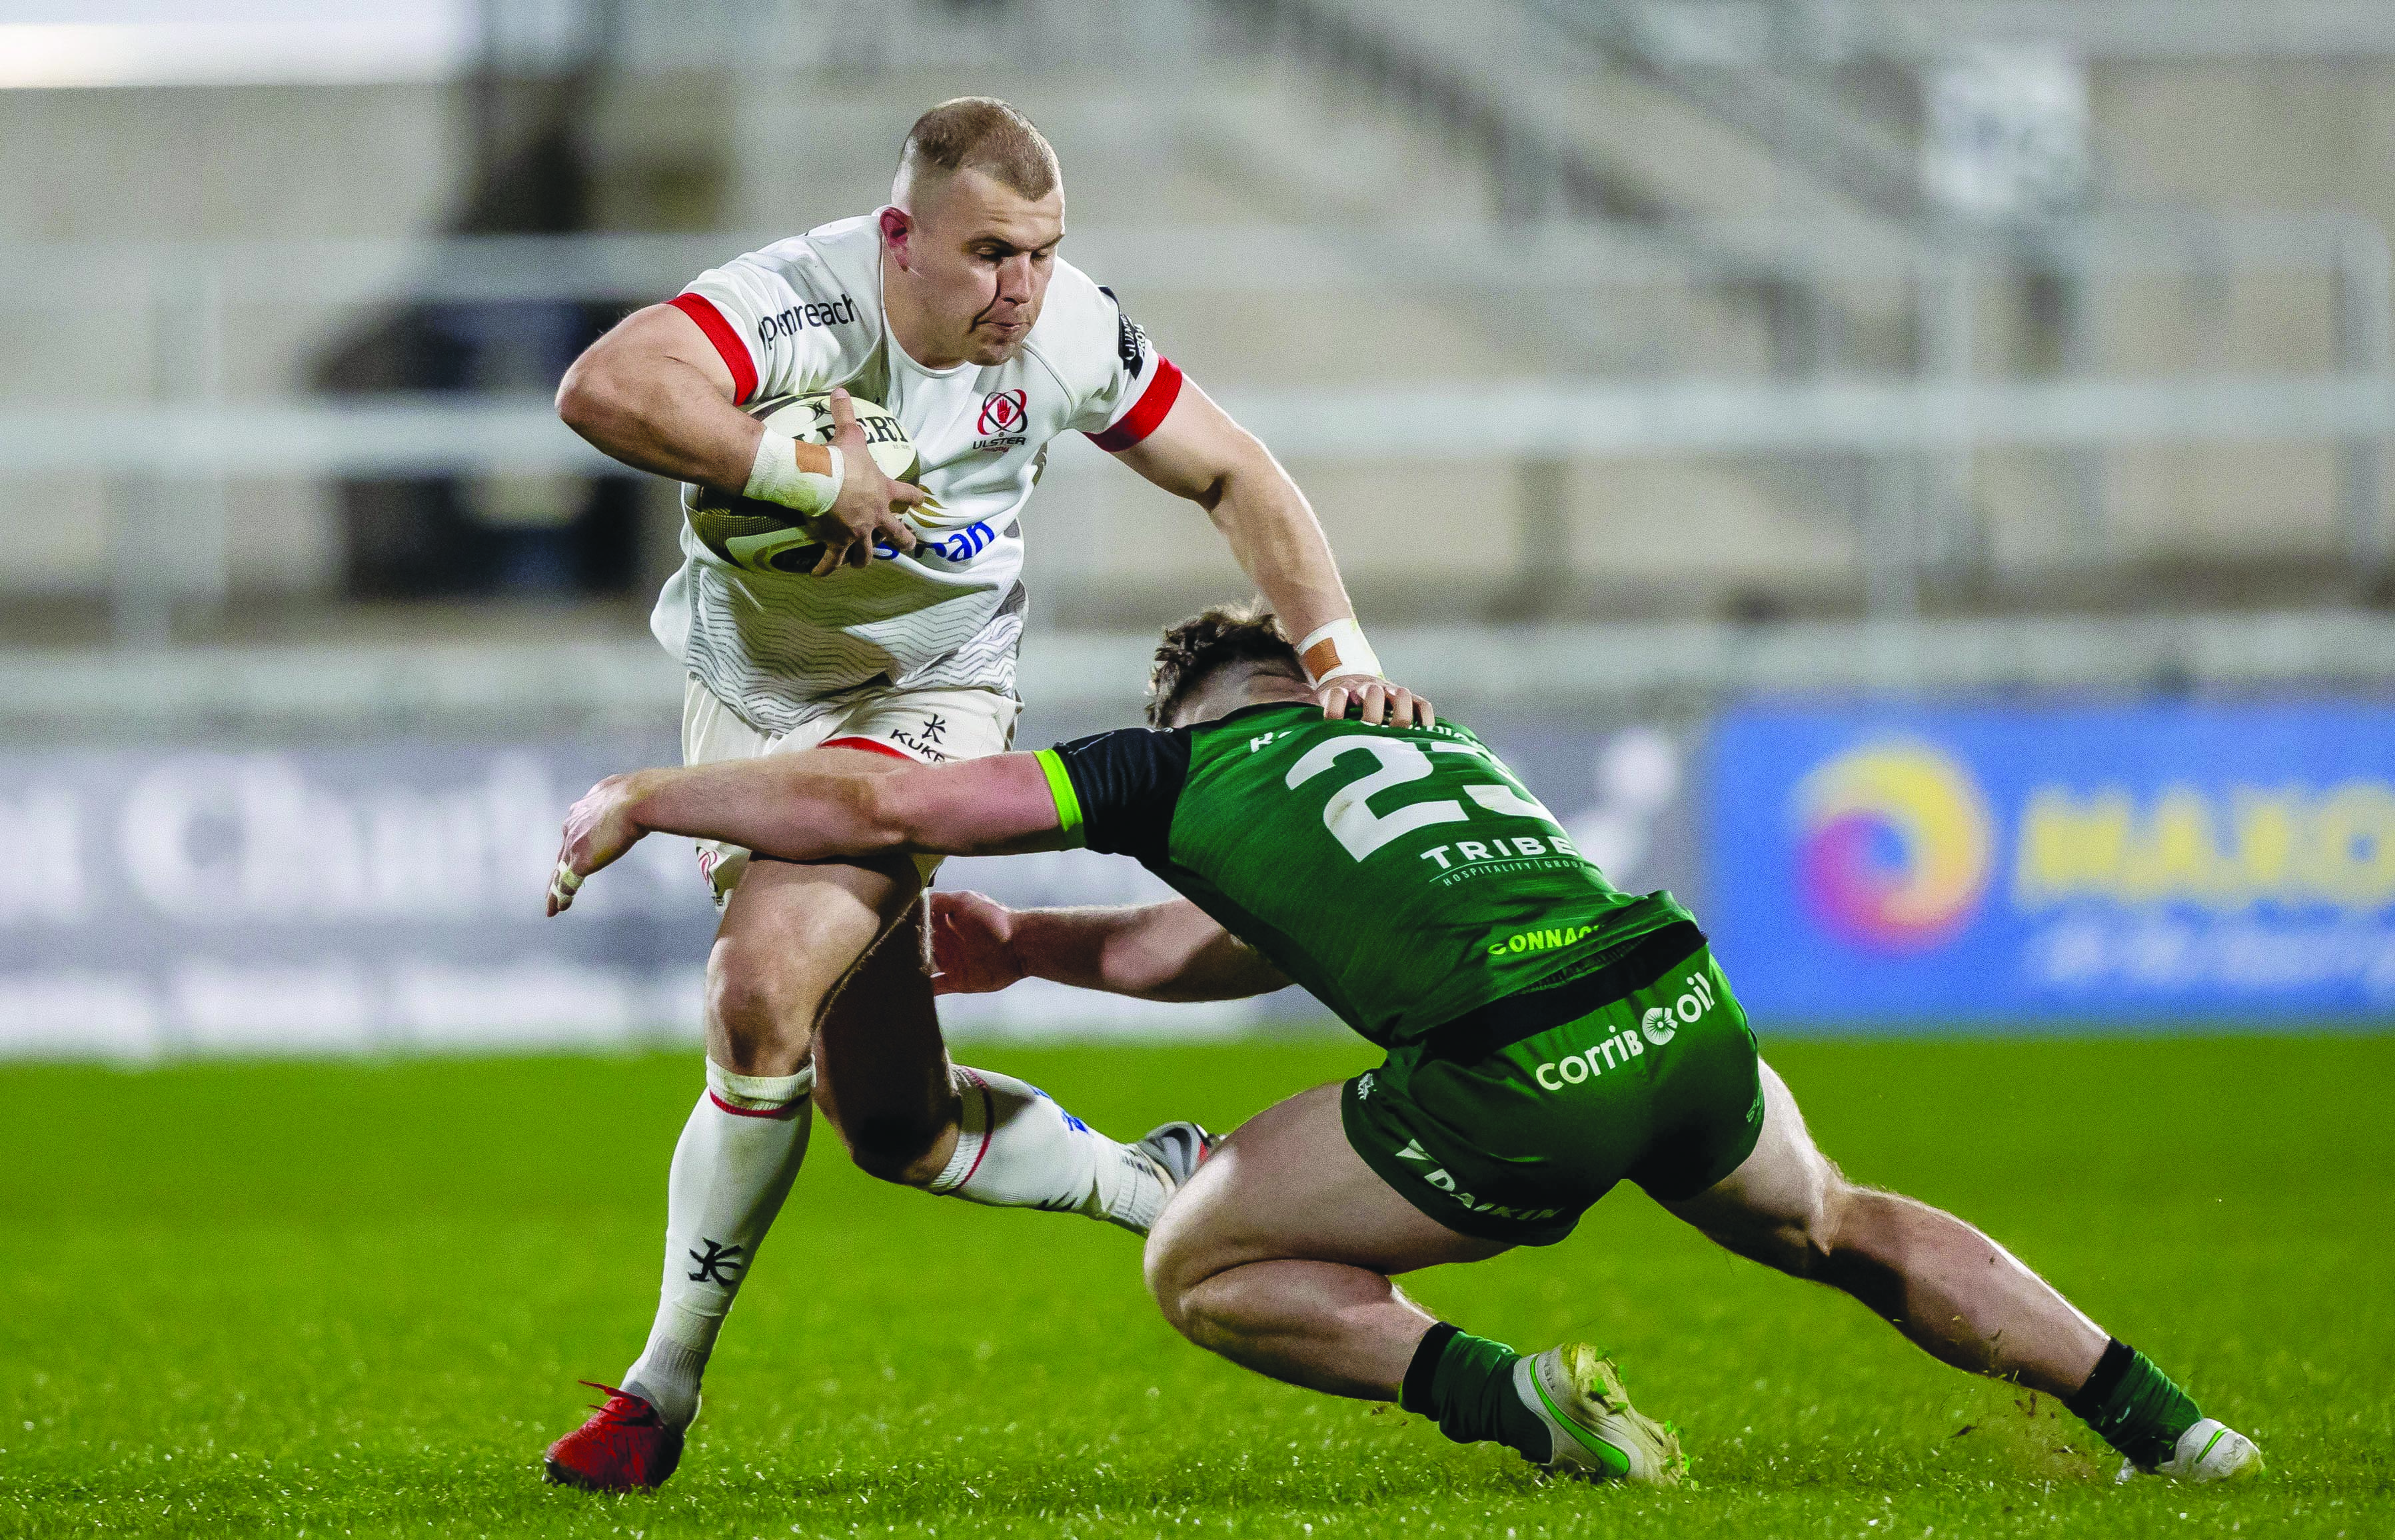 Will Addison is selected at centre for Friday's trip to Munster in what will be his first start of the season having battled back from a long-term back injury